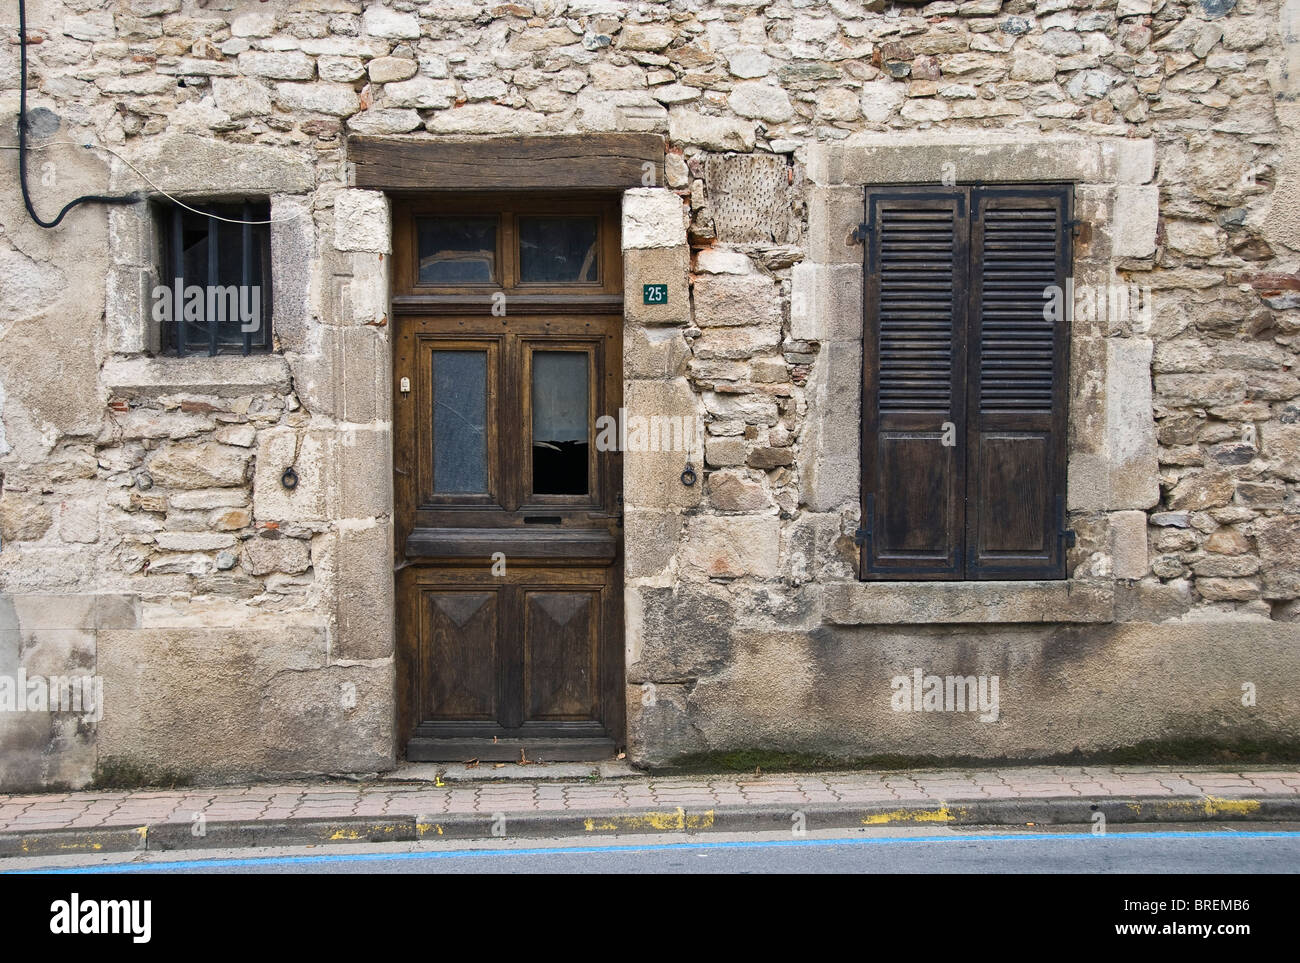 Farmhouse Kitchen Ideas also Prairie Style Siding furthermore Stock Photo Facade Of Old Stone House In A French Village 31670778 as well Wall Cladding Flagstone Granite Texture Seamless 07926 likewise 1909 In Frame Shaker Badsworth. on rustic country windows